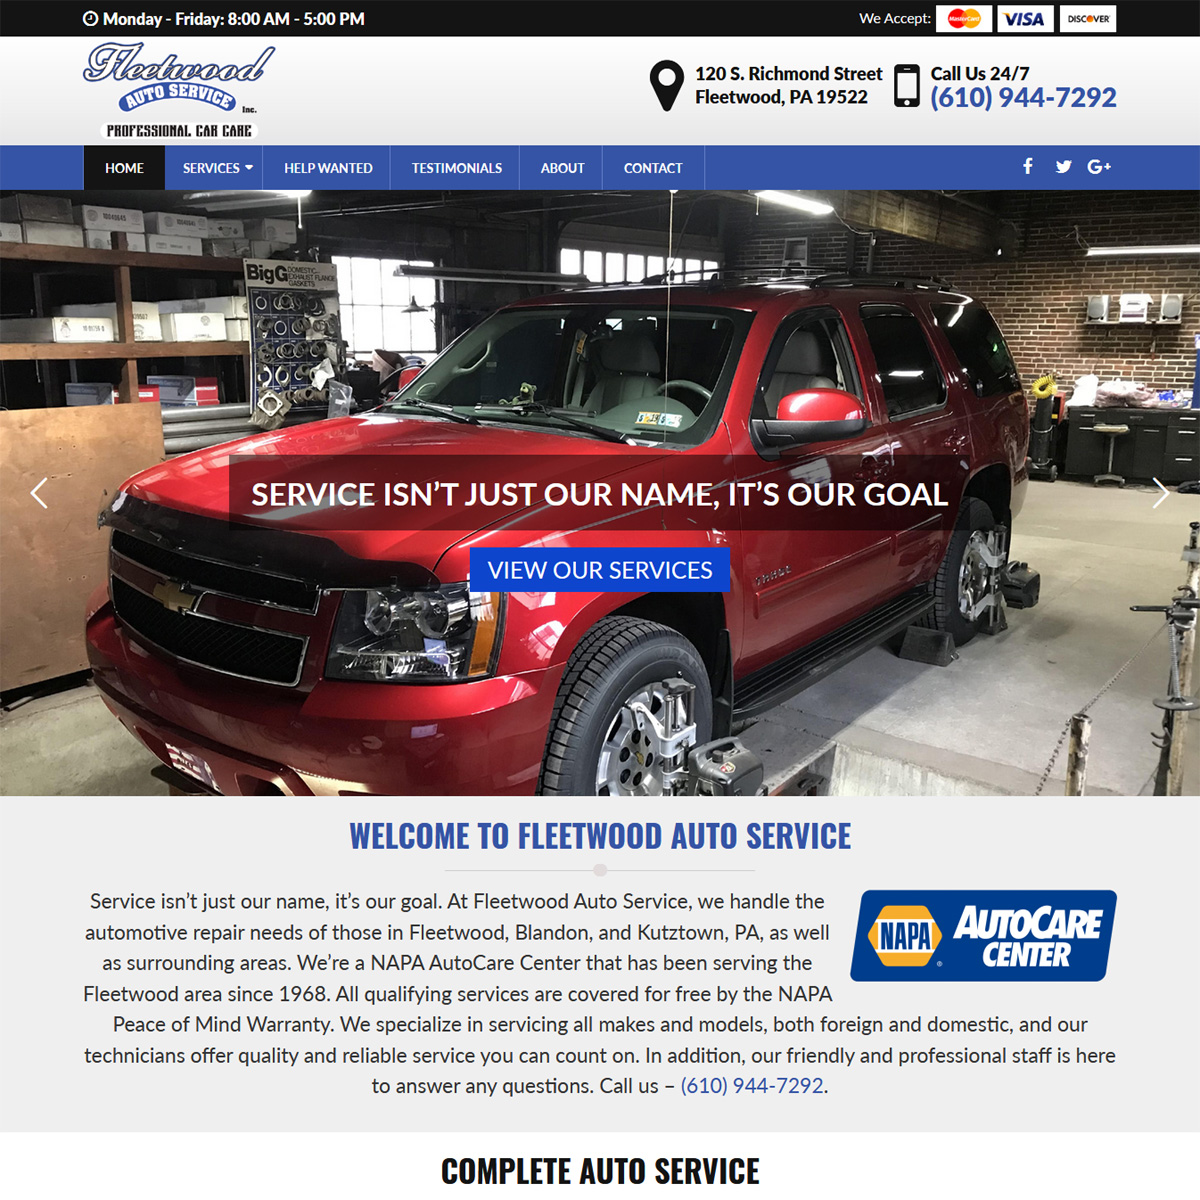 Fleetwood Auto Service Website Design